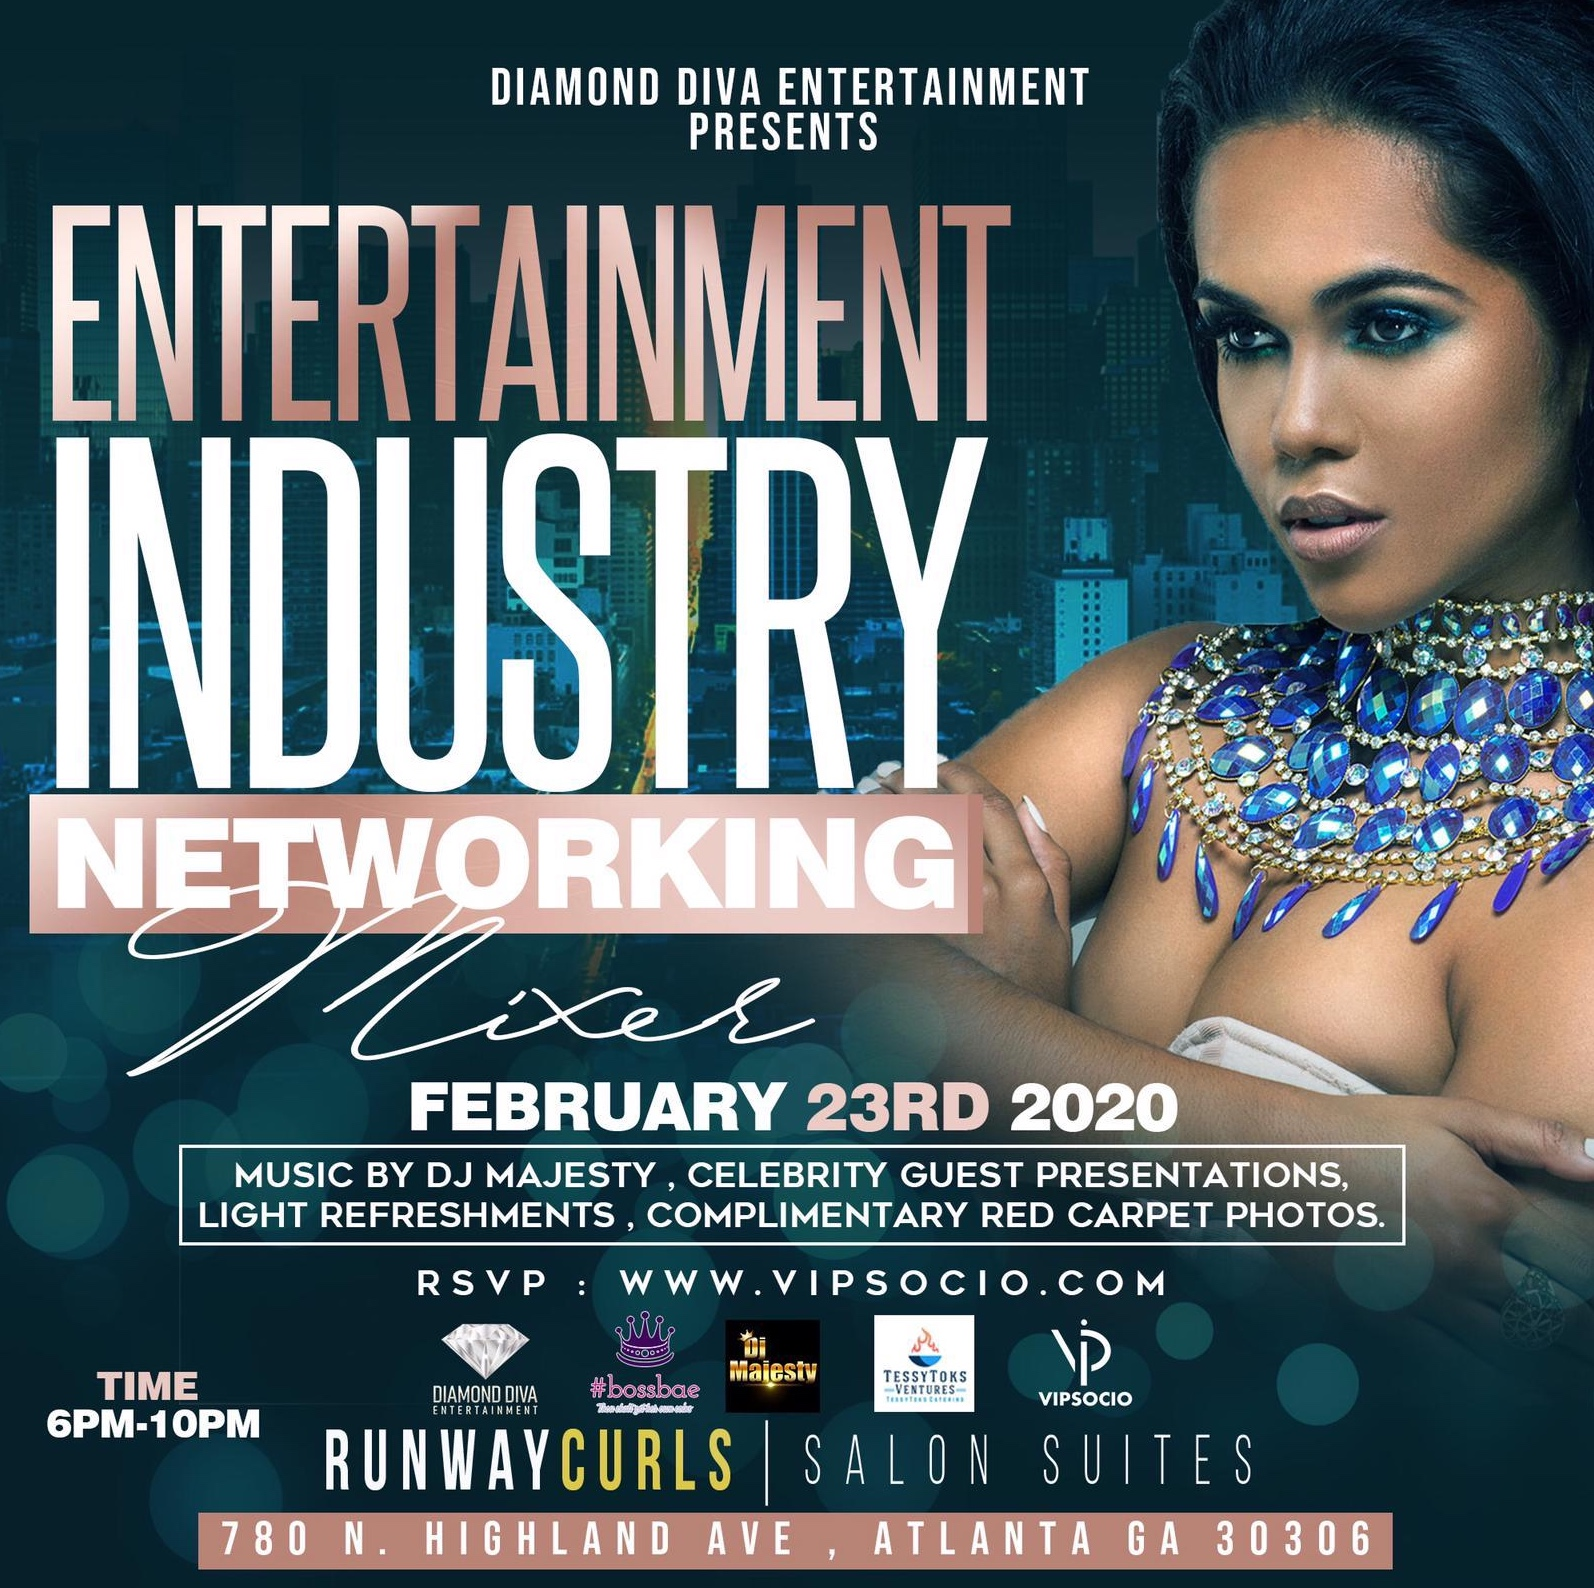 Entertainment Industry Network mixer